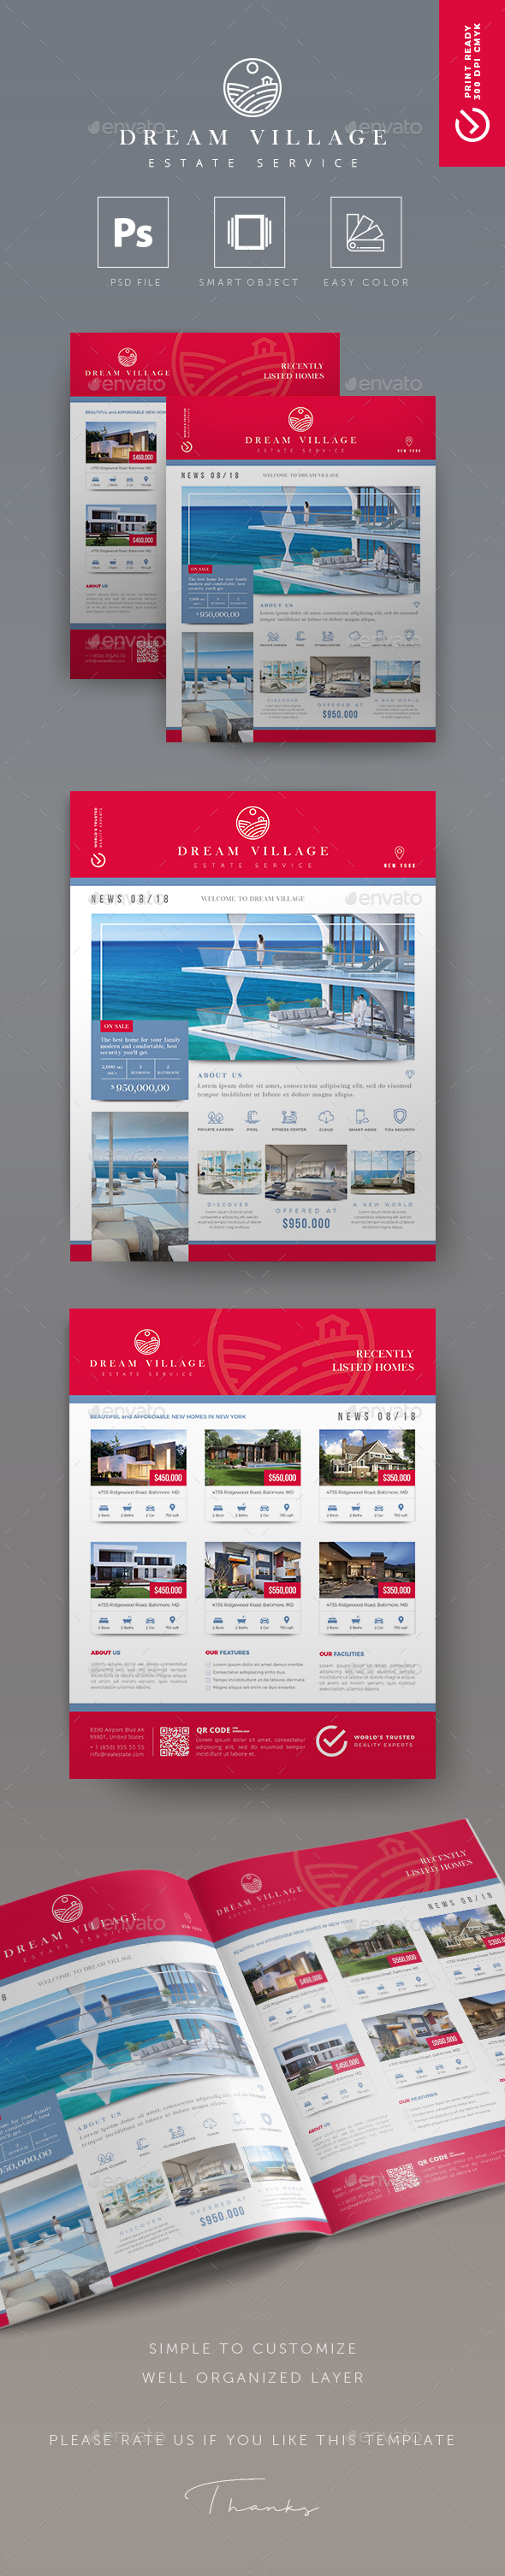 Dream Village - Creative Real Estate Flyer - Commerce Flyers